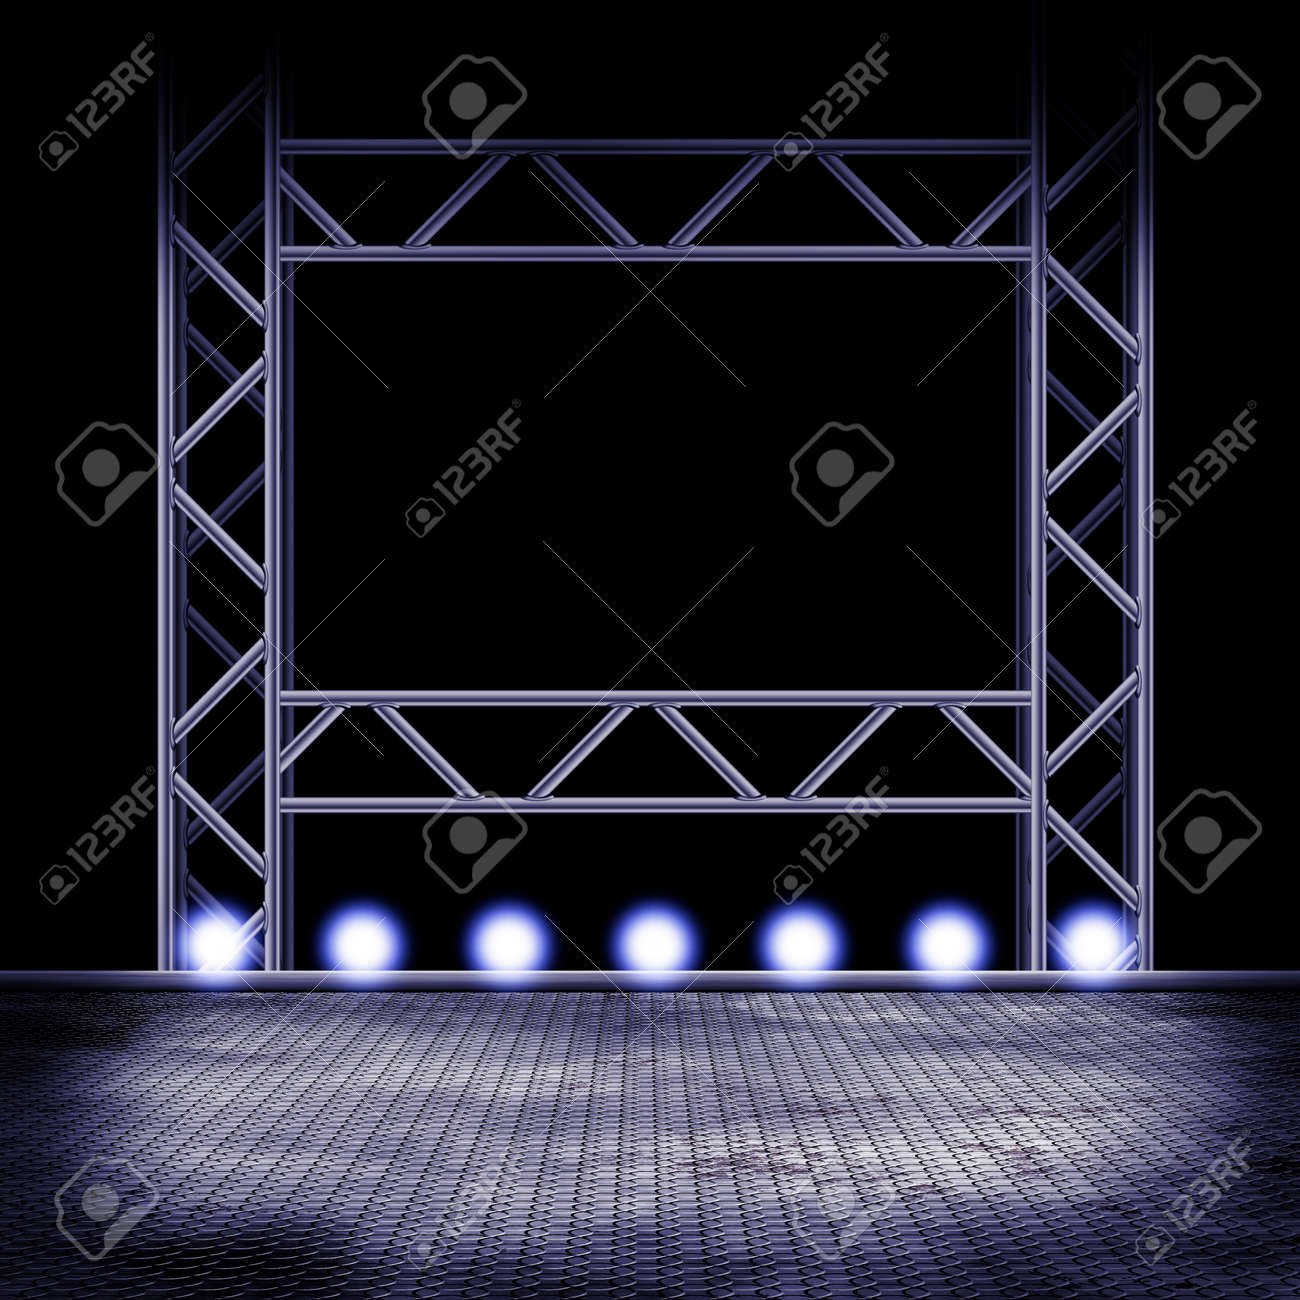 Illustration Of A Empty Stage With Lights Stock Photo Picture And